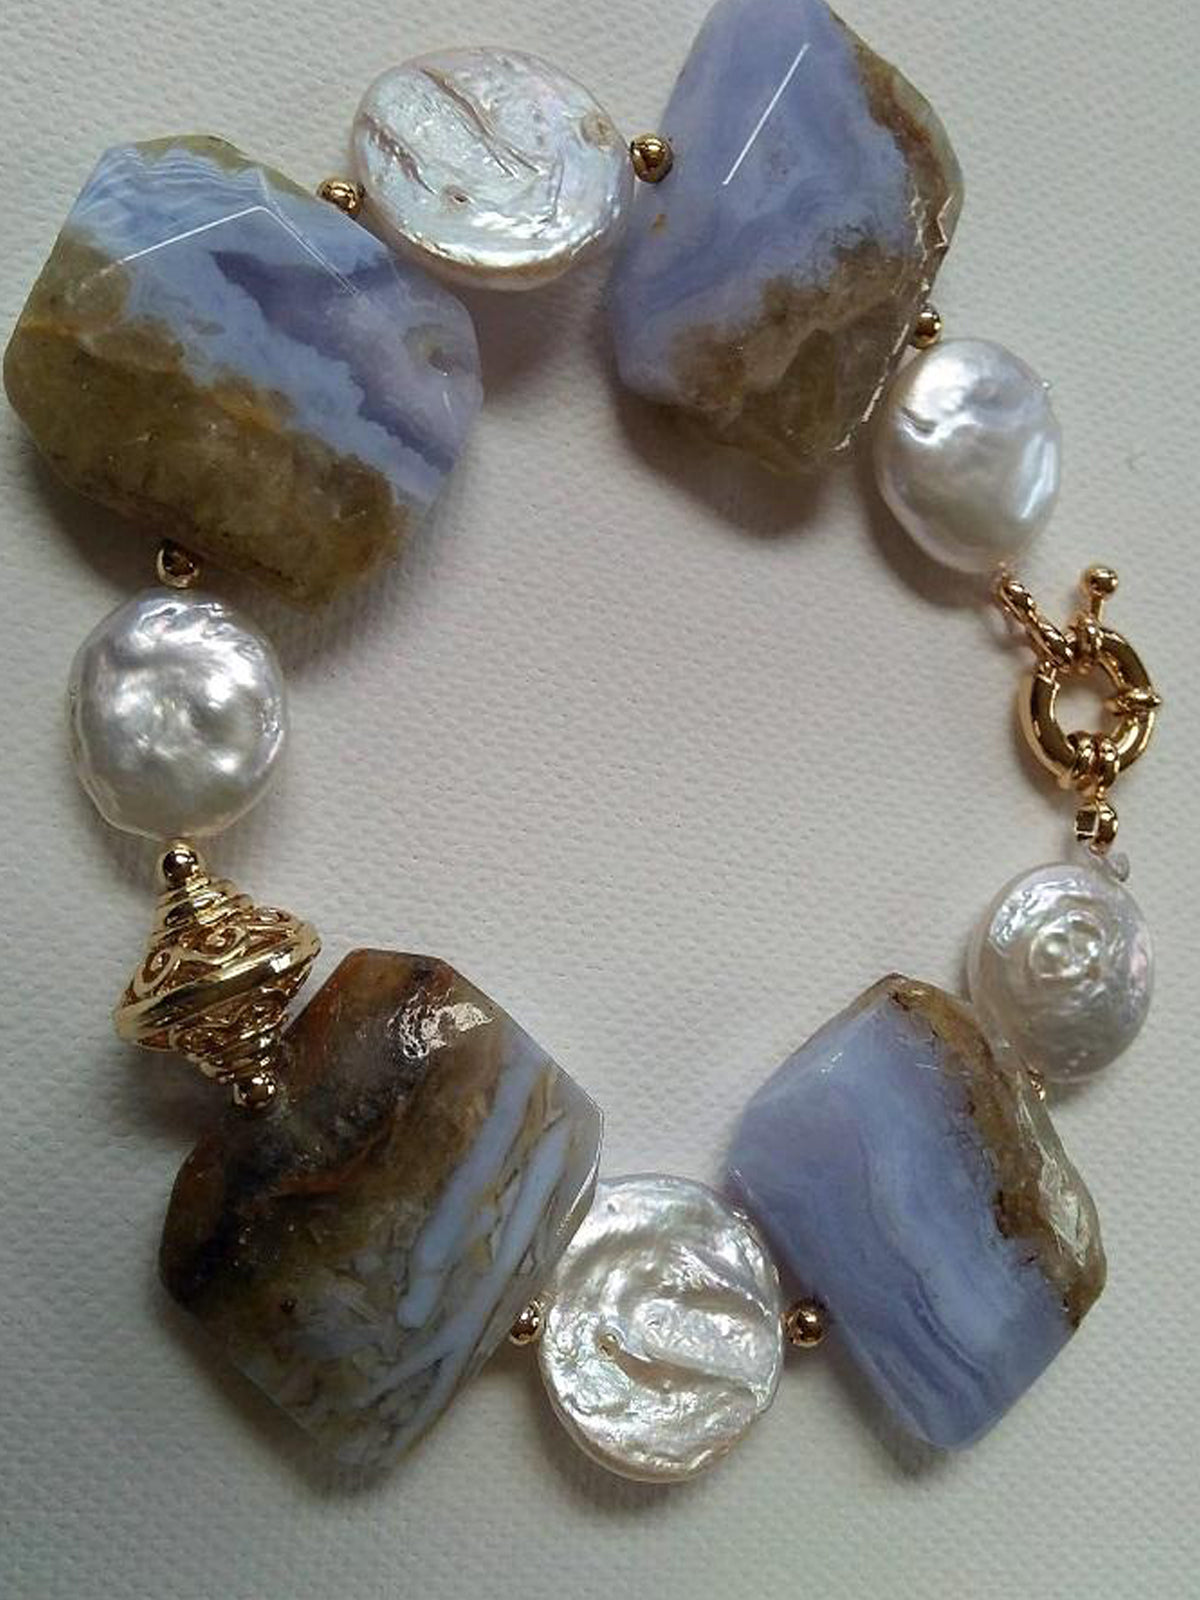 Emmari Pearls and Chalcedony Bracelet